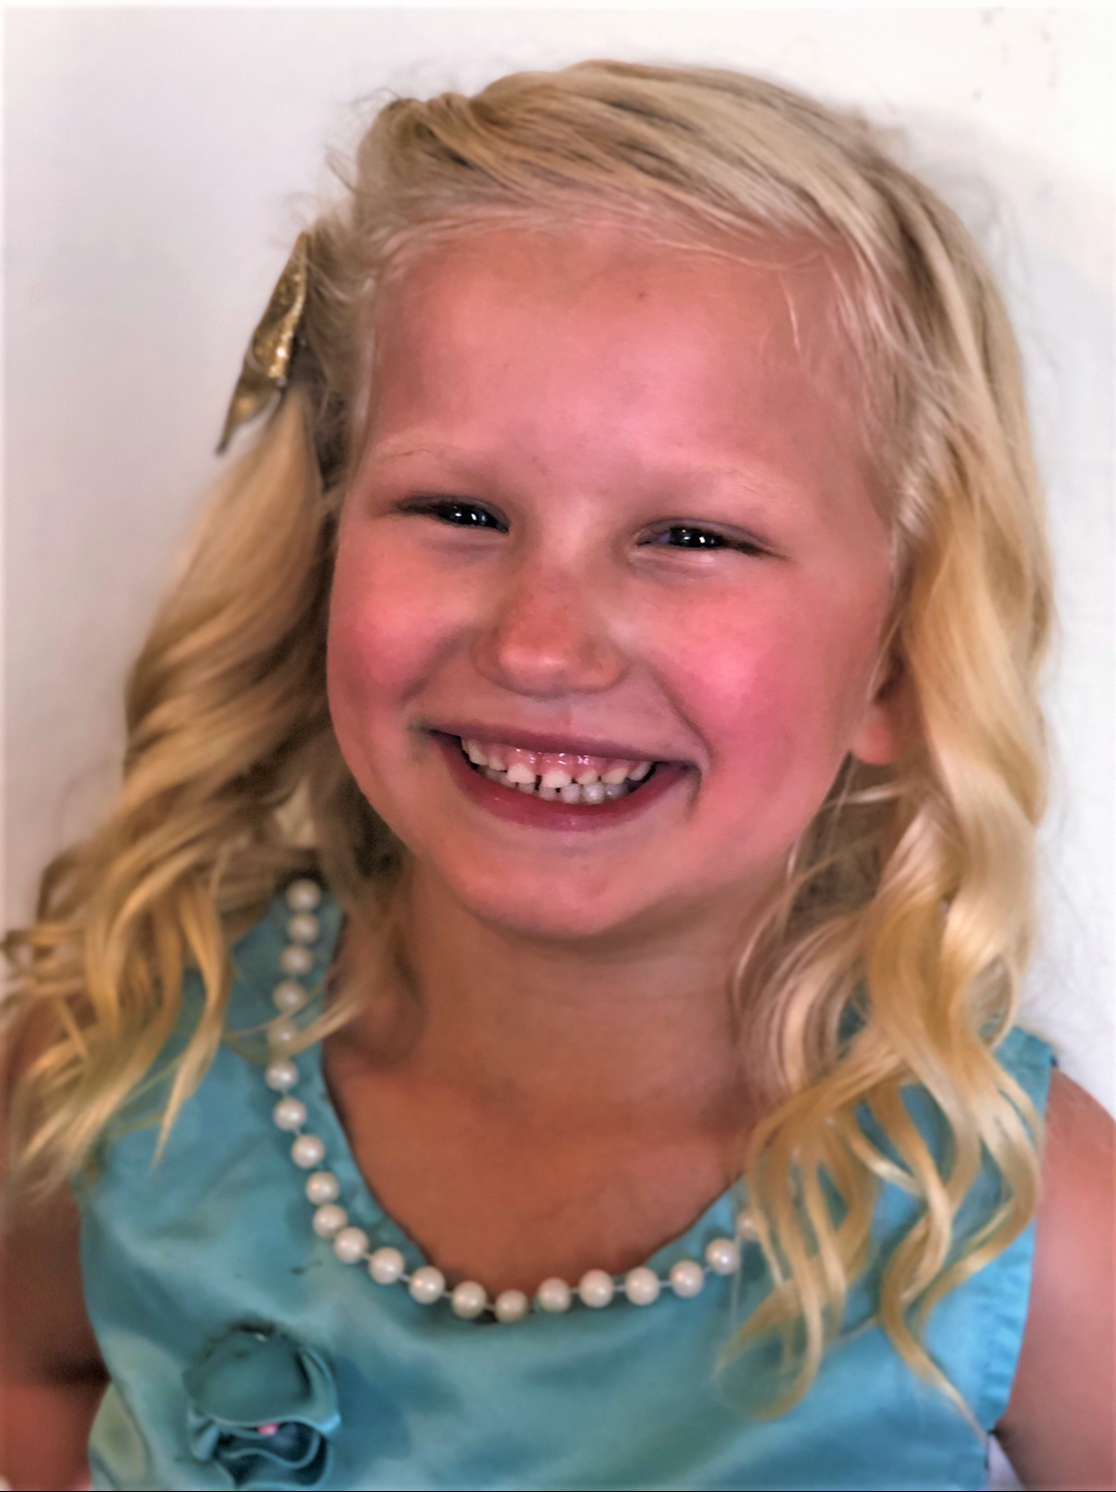 BABY MISS AMERICA STATE PAGEANT | 2019 State Pageant Candidate-at